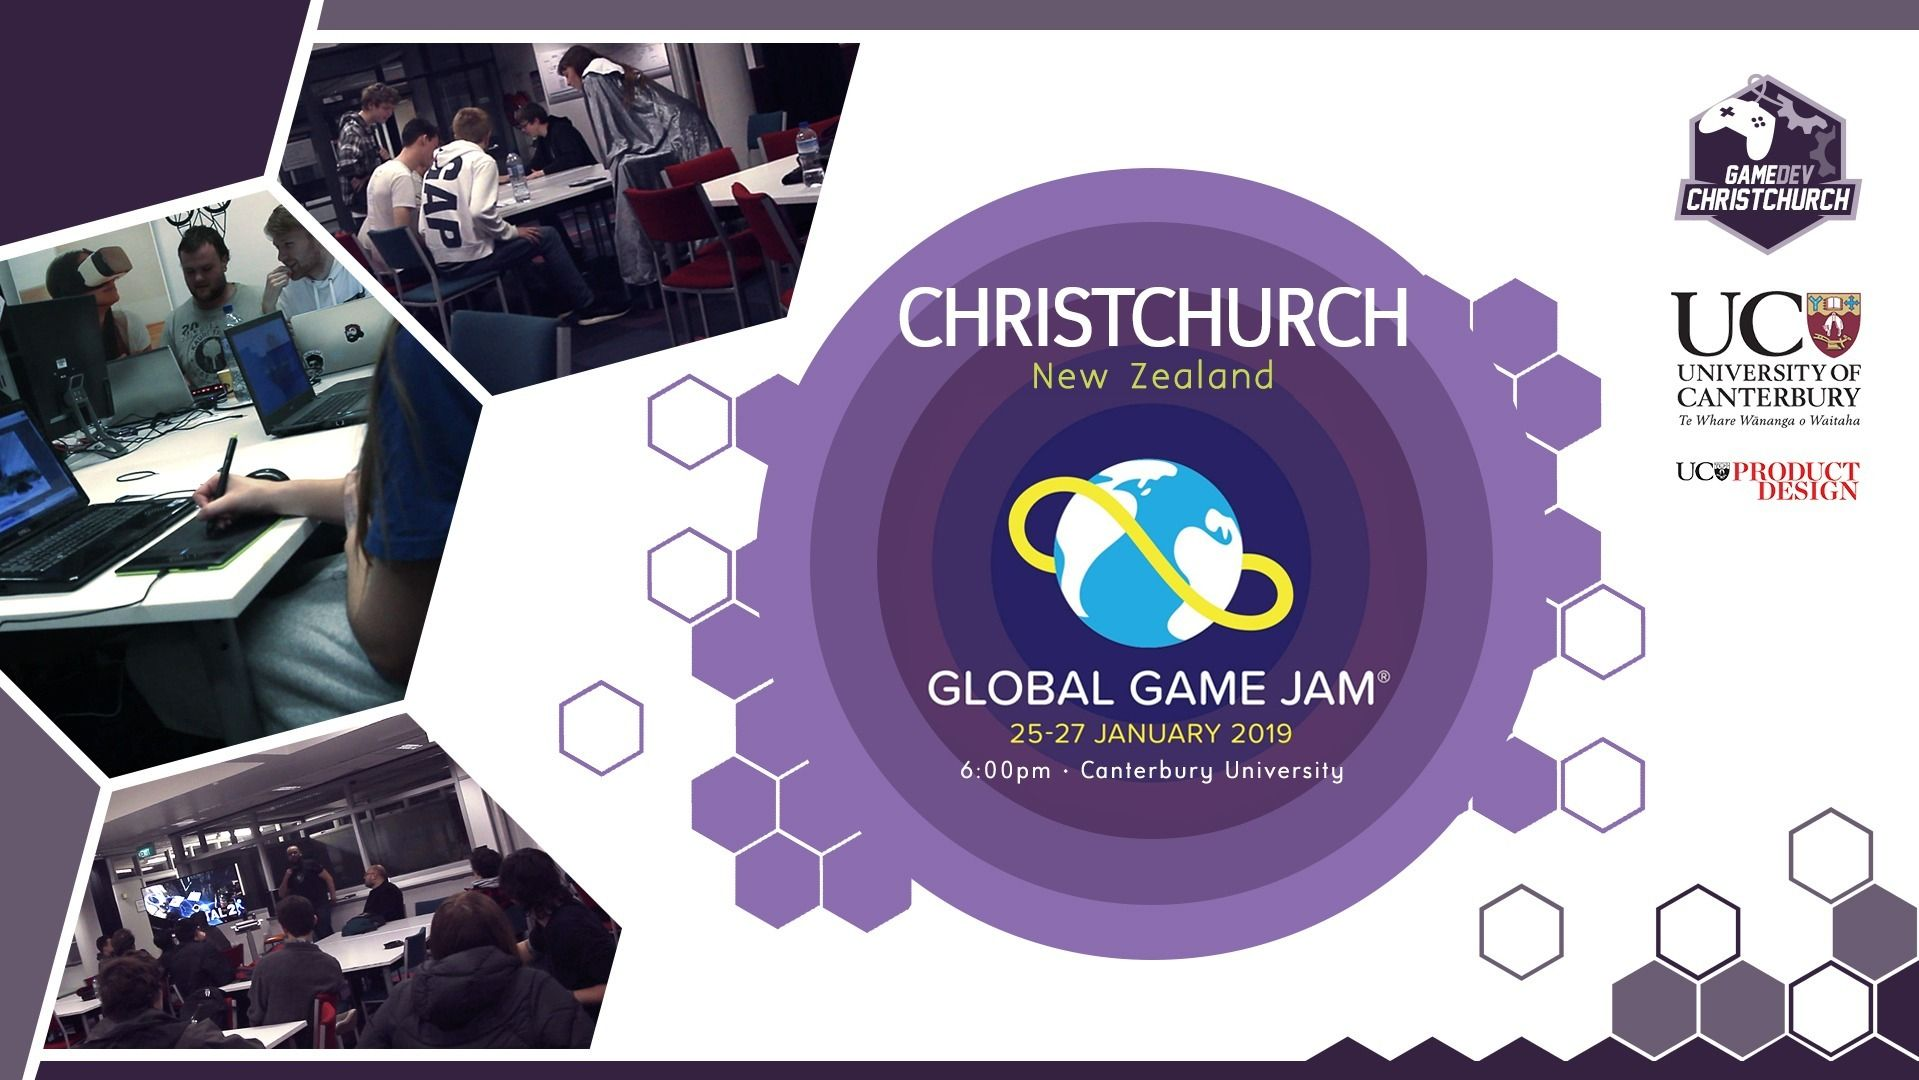 Christchurch site for Clobal Game Jam on 25 - 27 January 2019